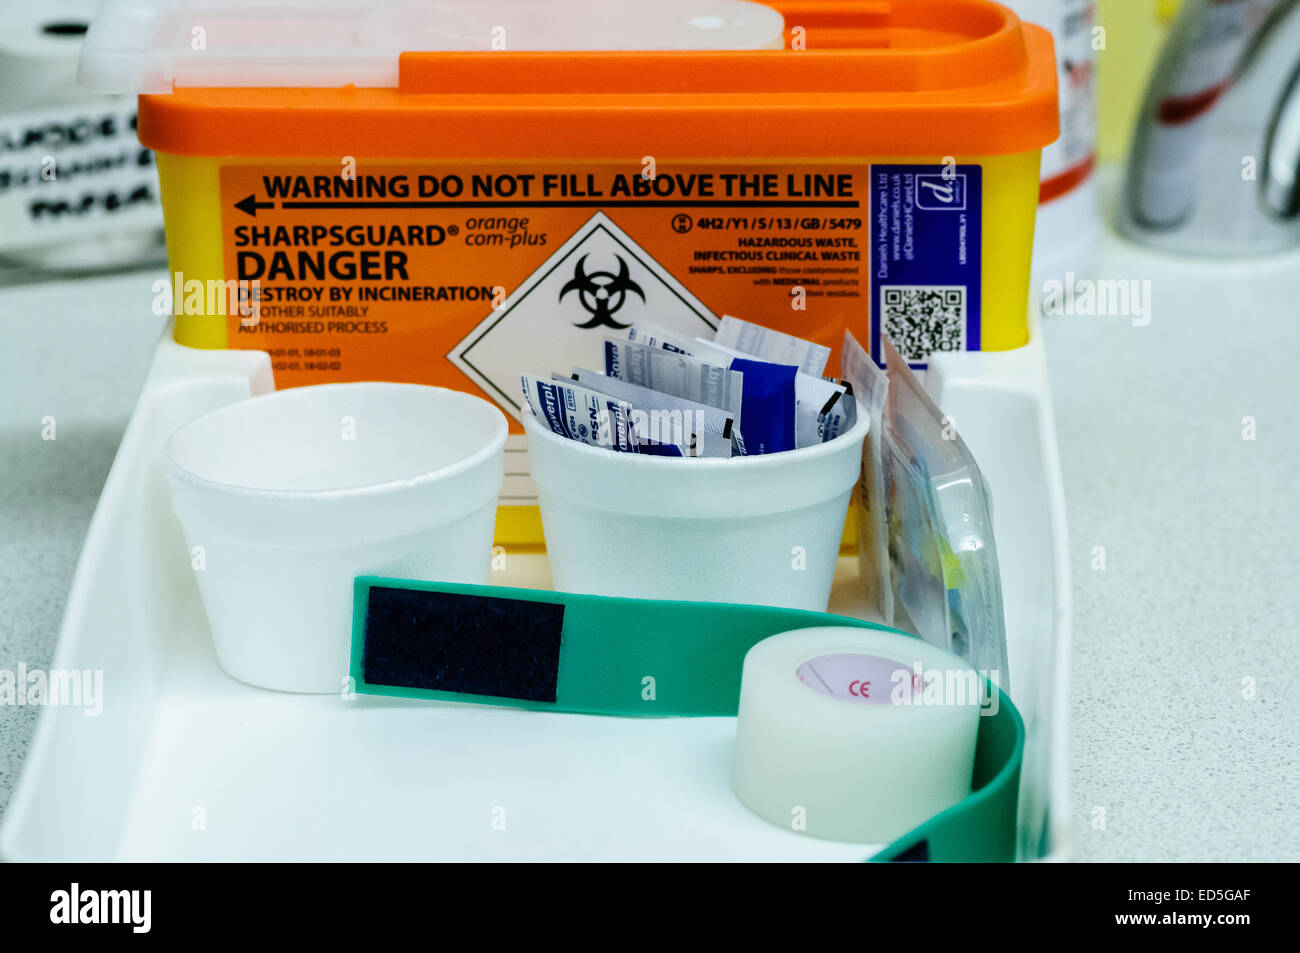 Pre-prepared tray for taking blood or administering intravenous drugs to patients. - Stock Image